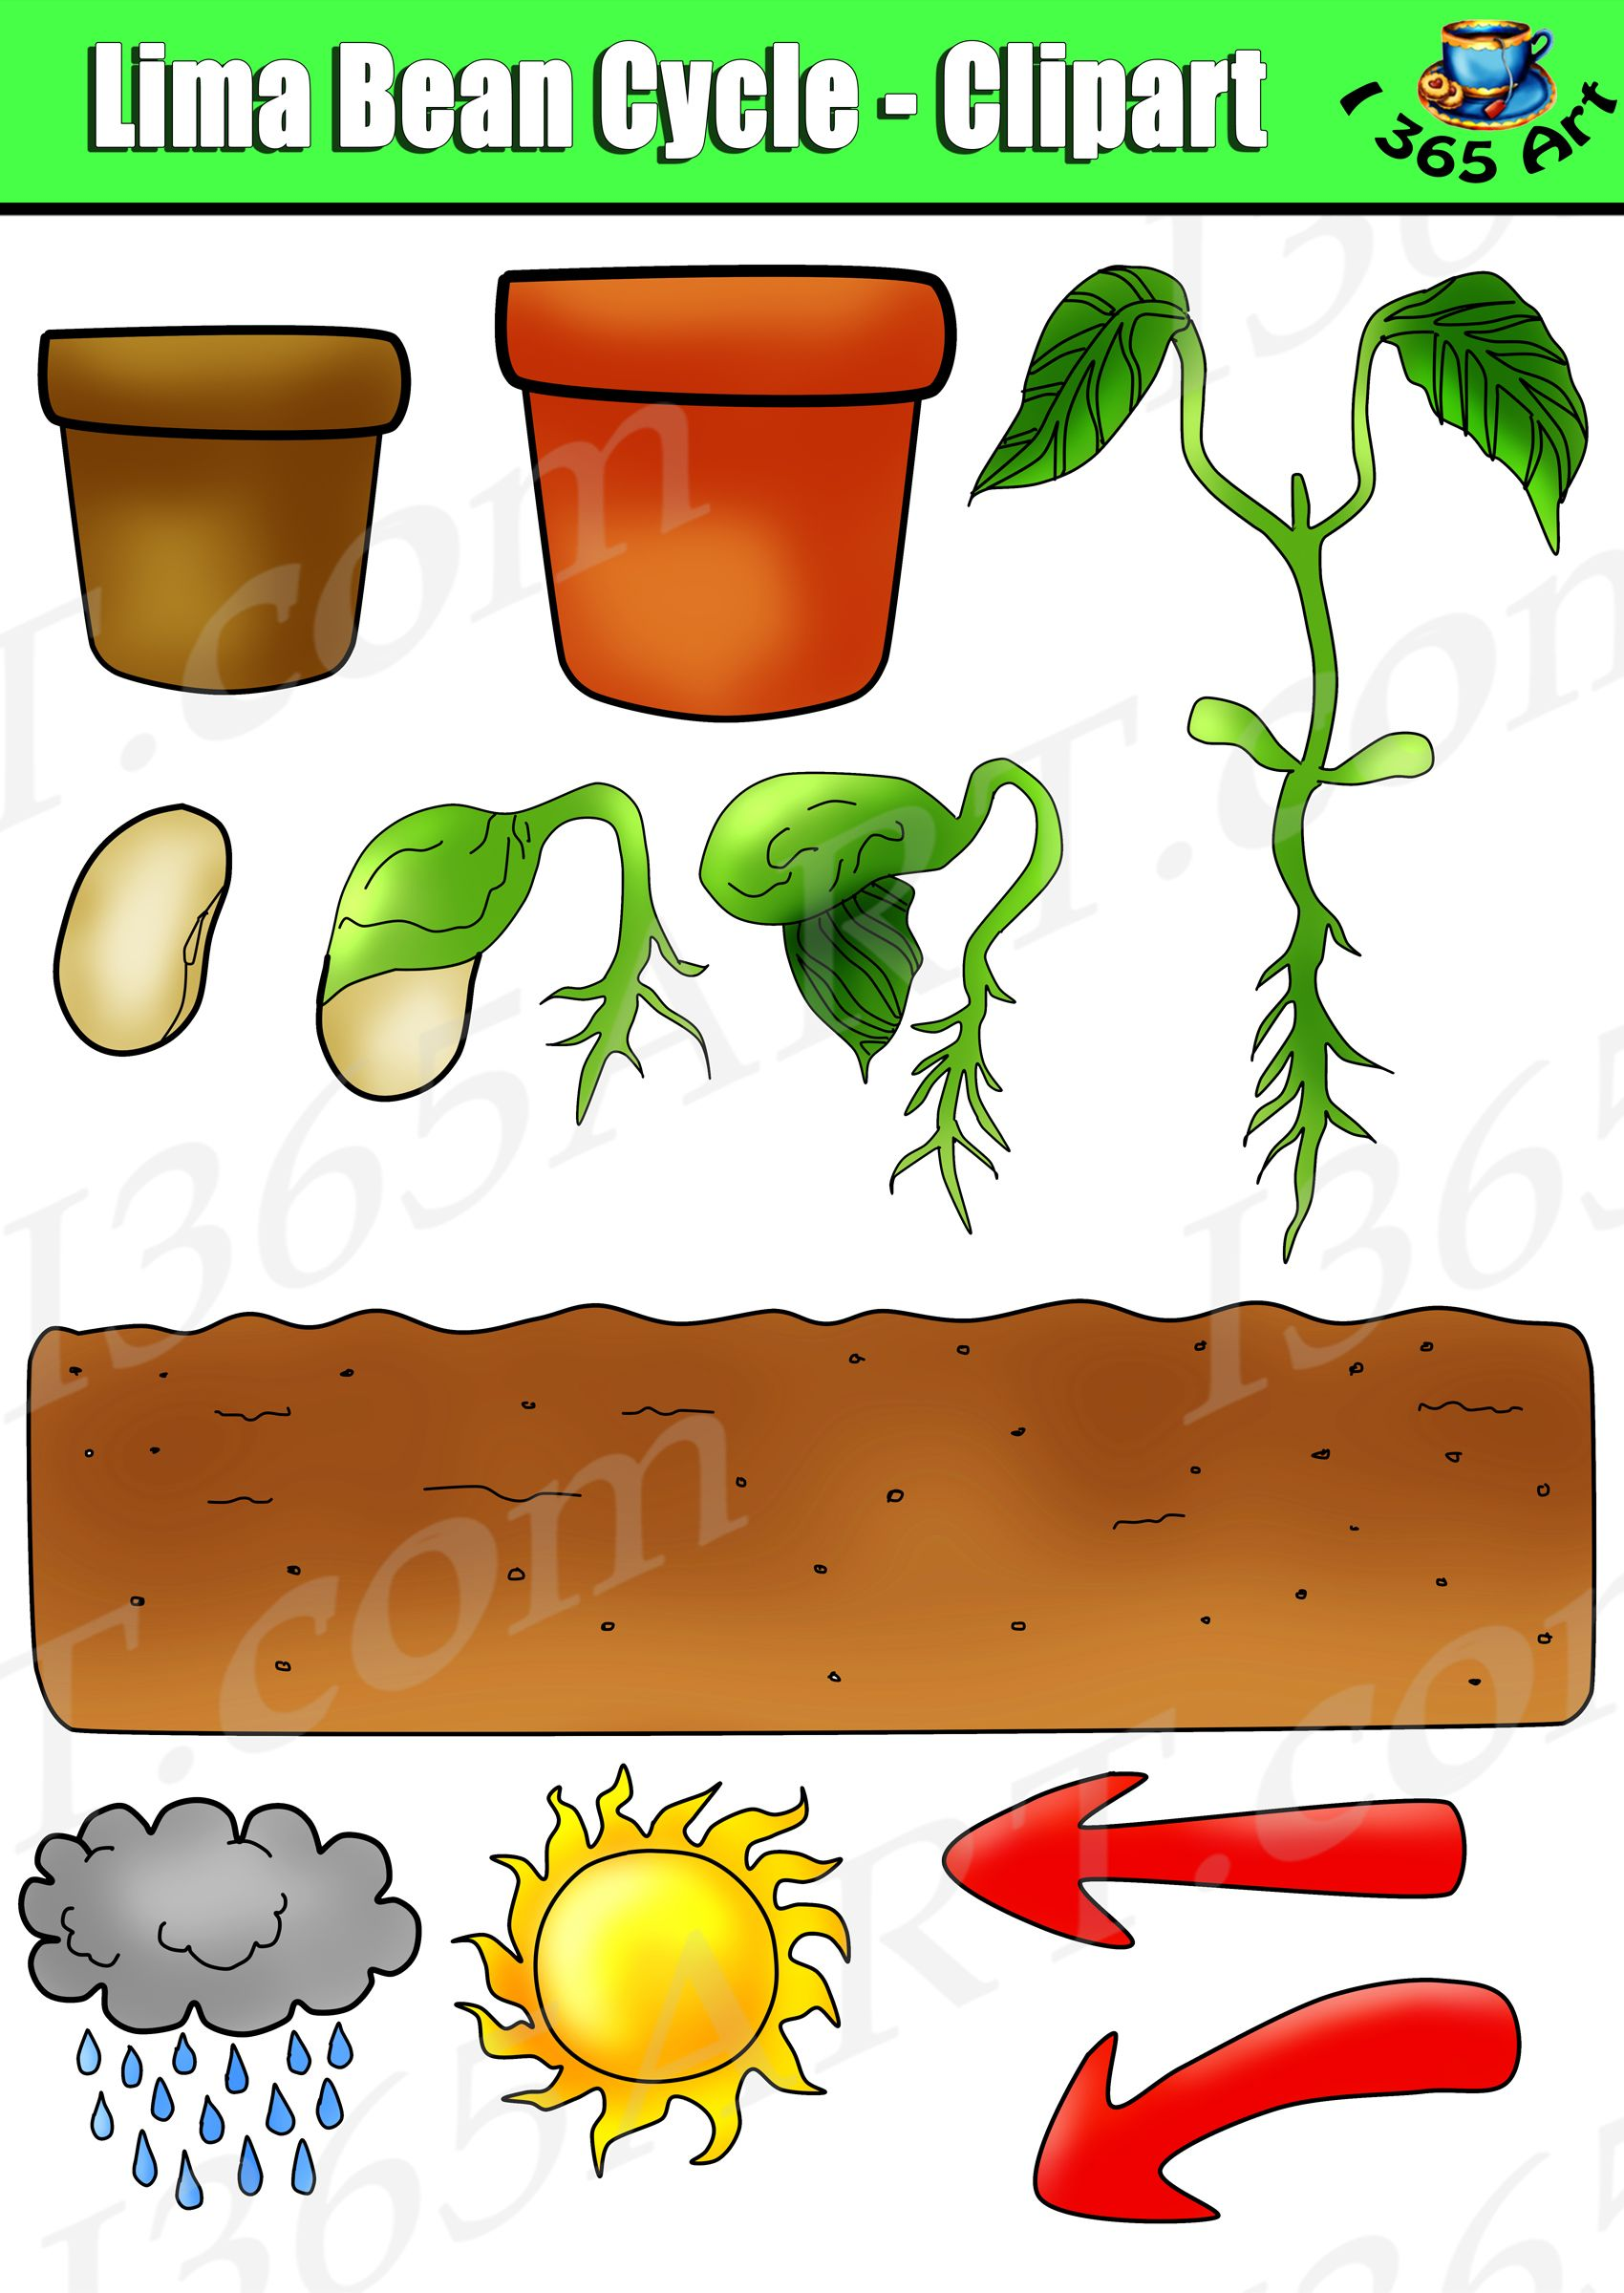 Plant life clipart image library stock Plant Life Cycle Clipart - Lima Bean Set - Color & Black ... image library stock